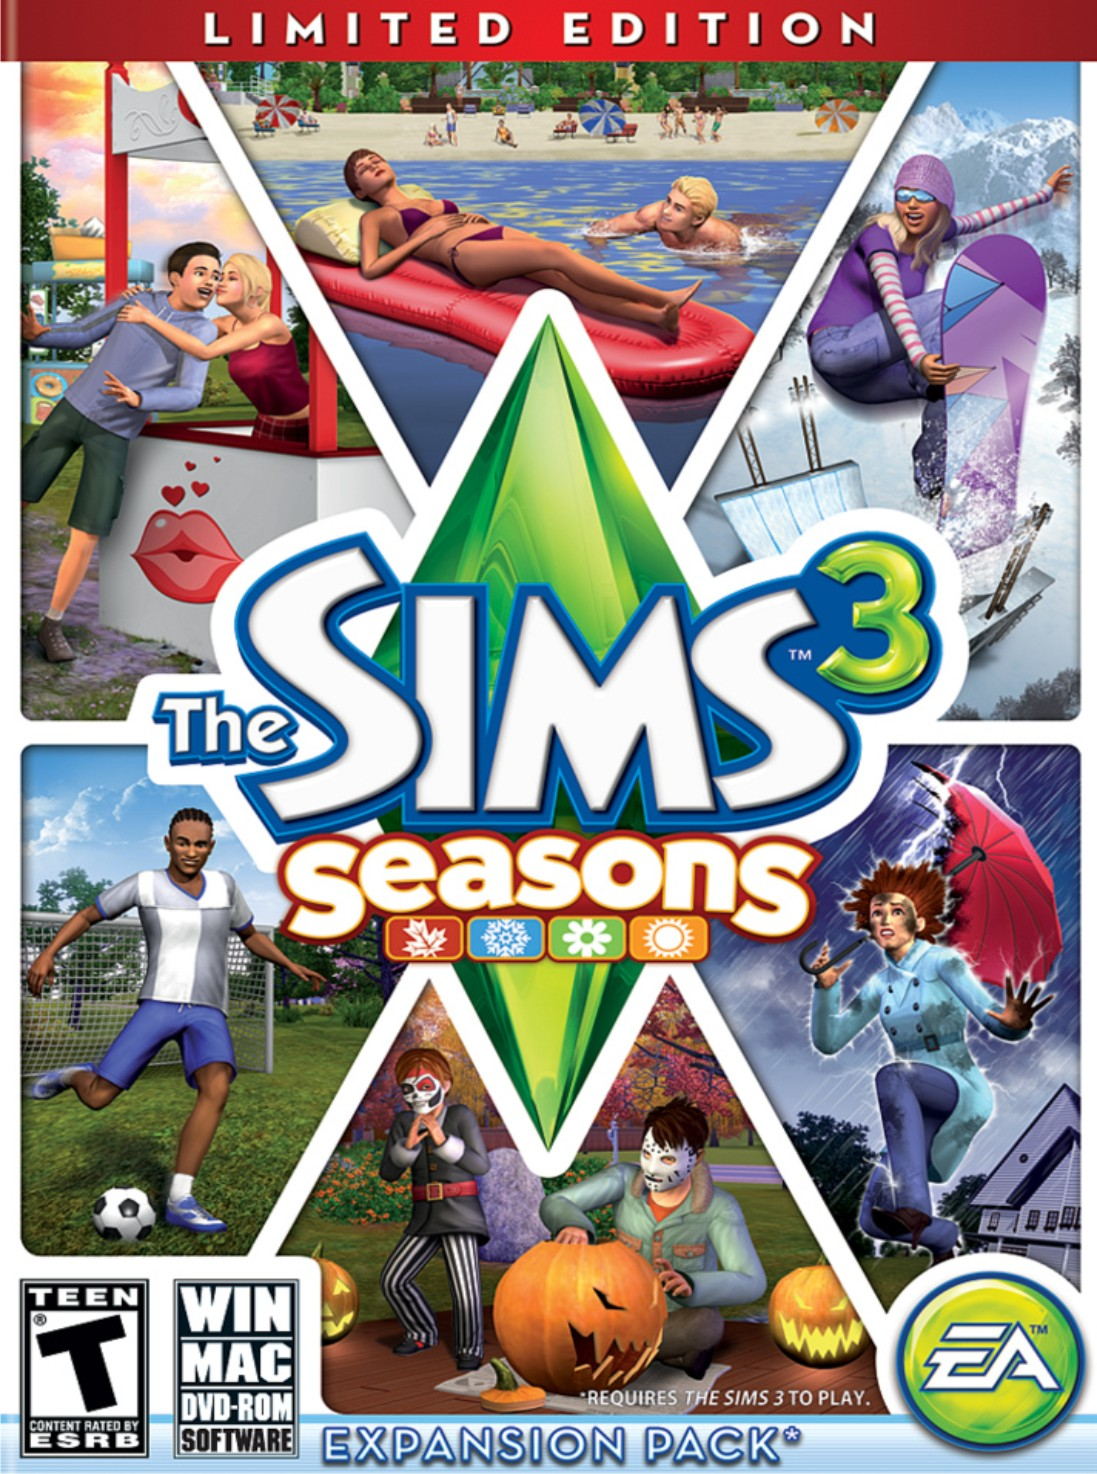 The sims 3 serial code free for you 2019.